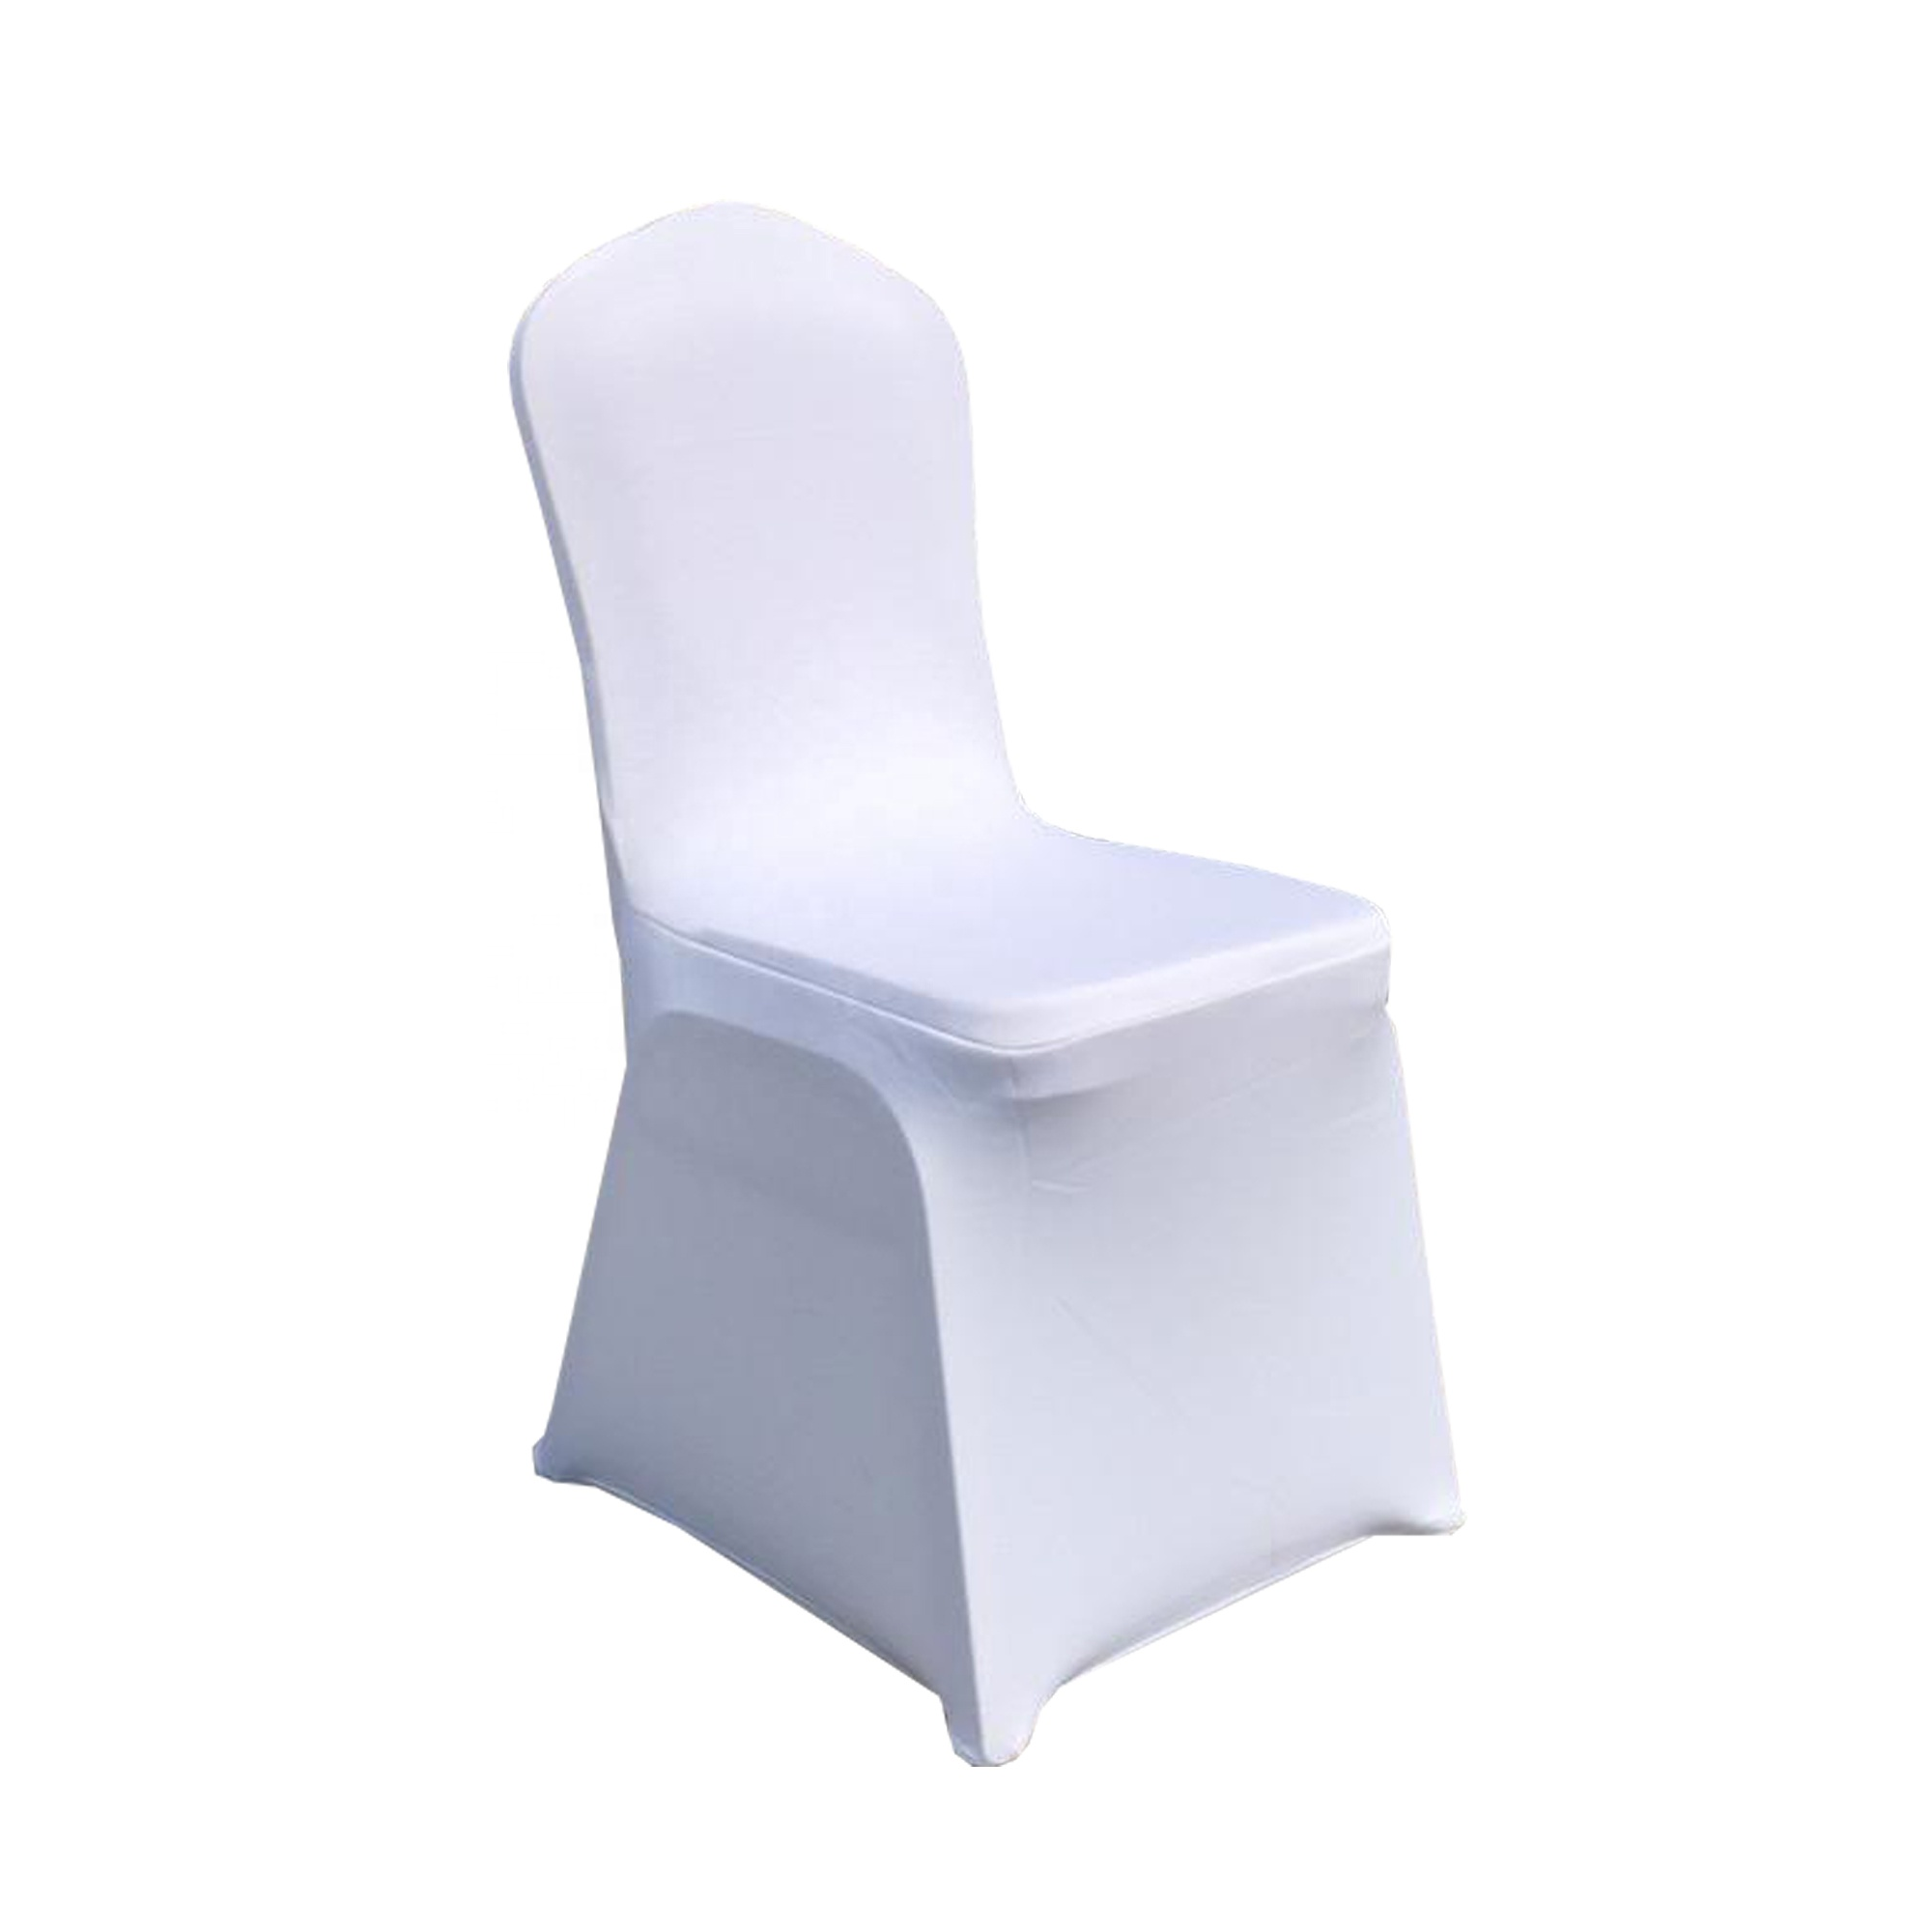 Tremendous China White Spandex Chair Covers China White Spandex Chair Interior Design Ideas Gentotryabchikinfo